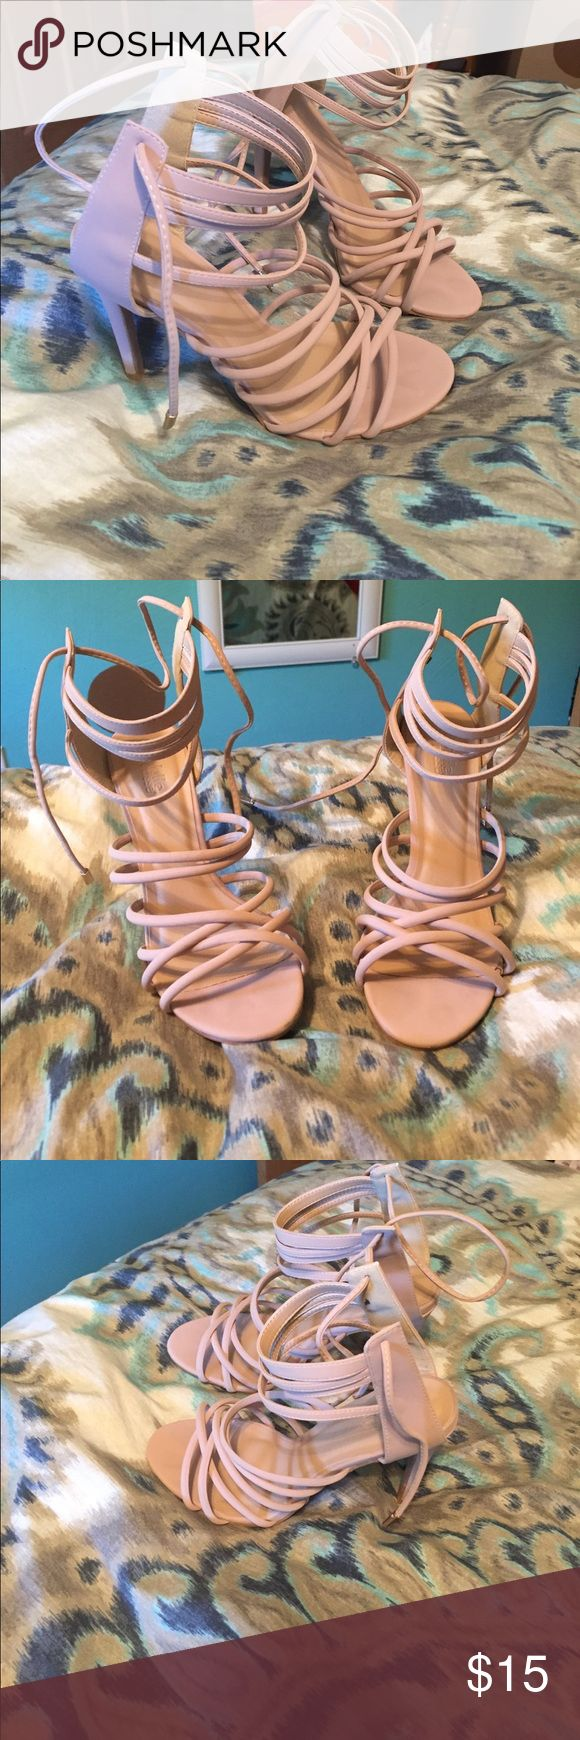 High heels Nude/beige in color, originally from Charlotte Russe, size 8, never worn, excellent condition! Perfect strappy high hell to wear out! Charlotte Russe Shoes Heels